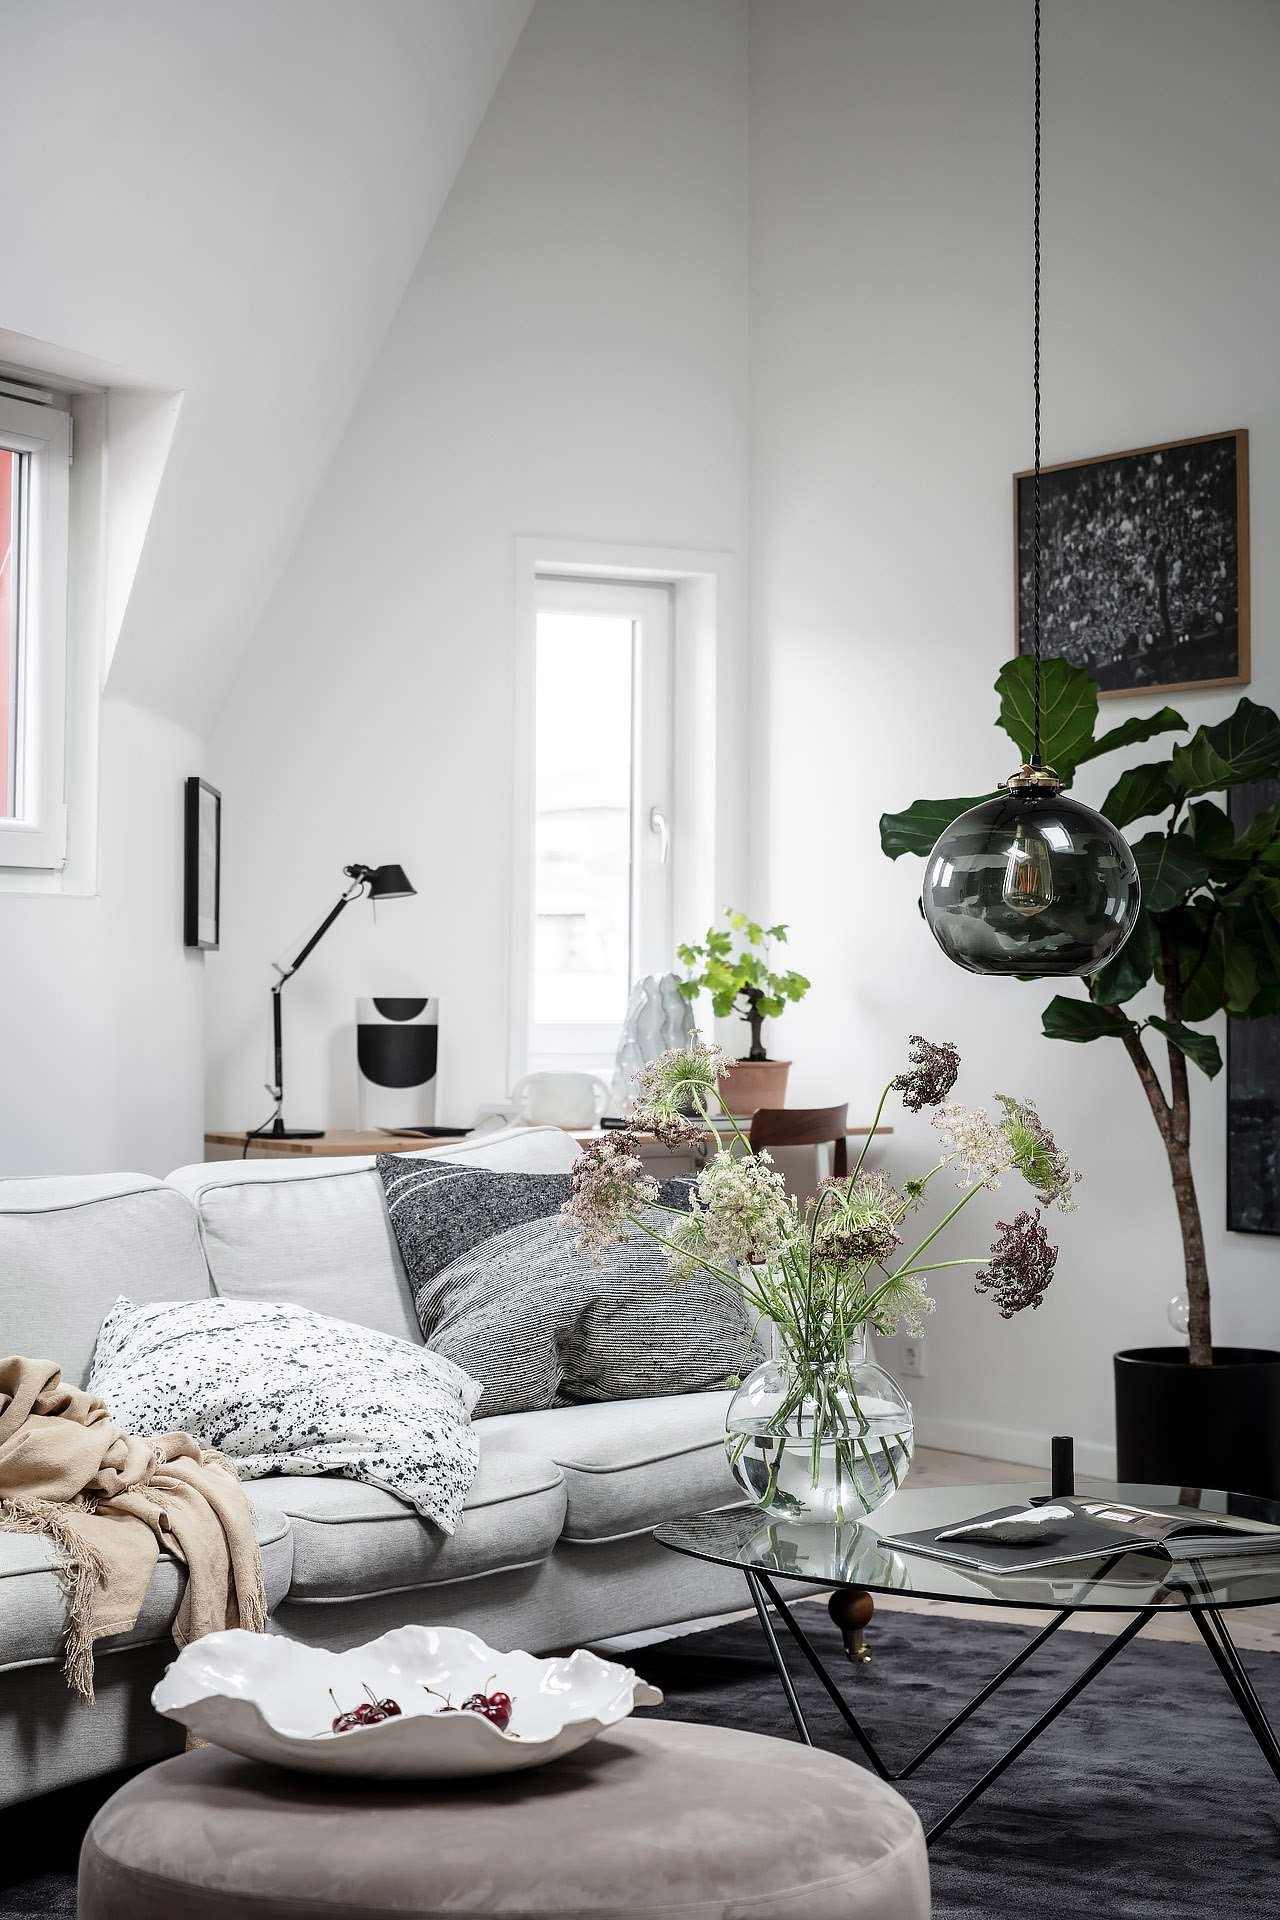 Add Comfy Pillows + a Throw to Make it Cozy